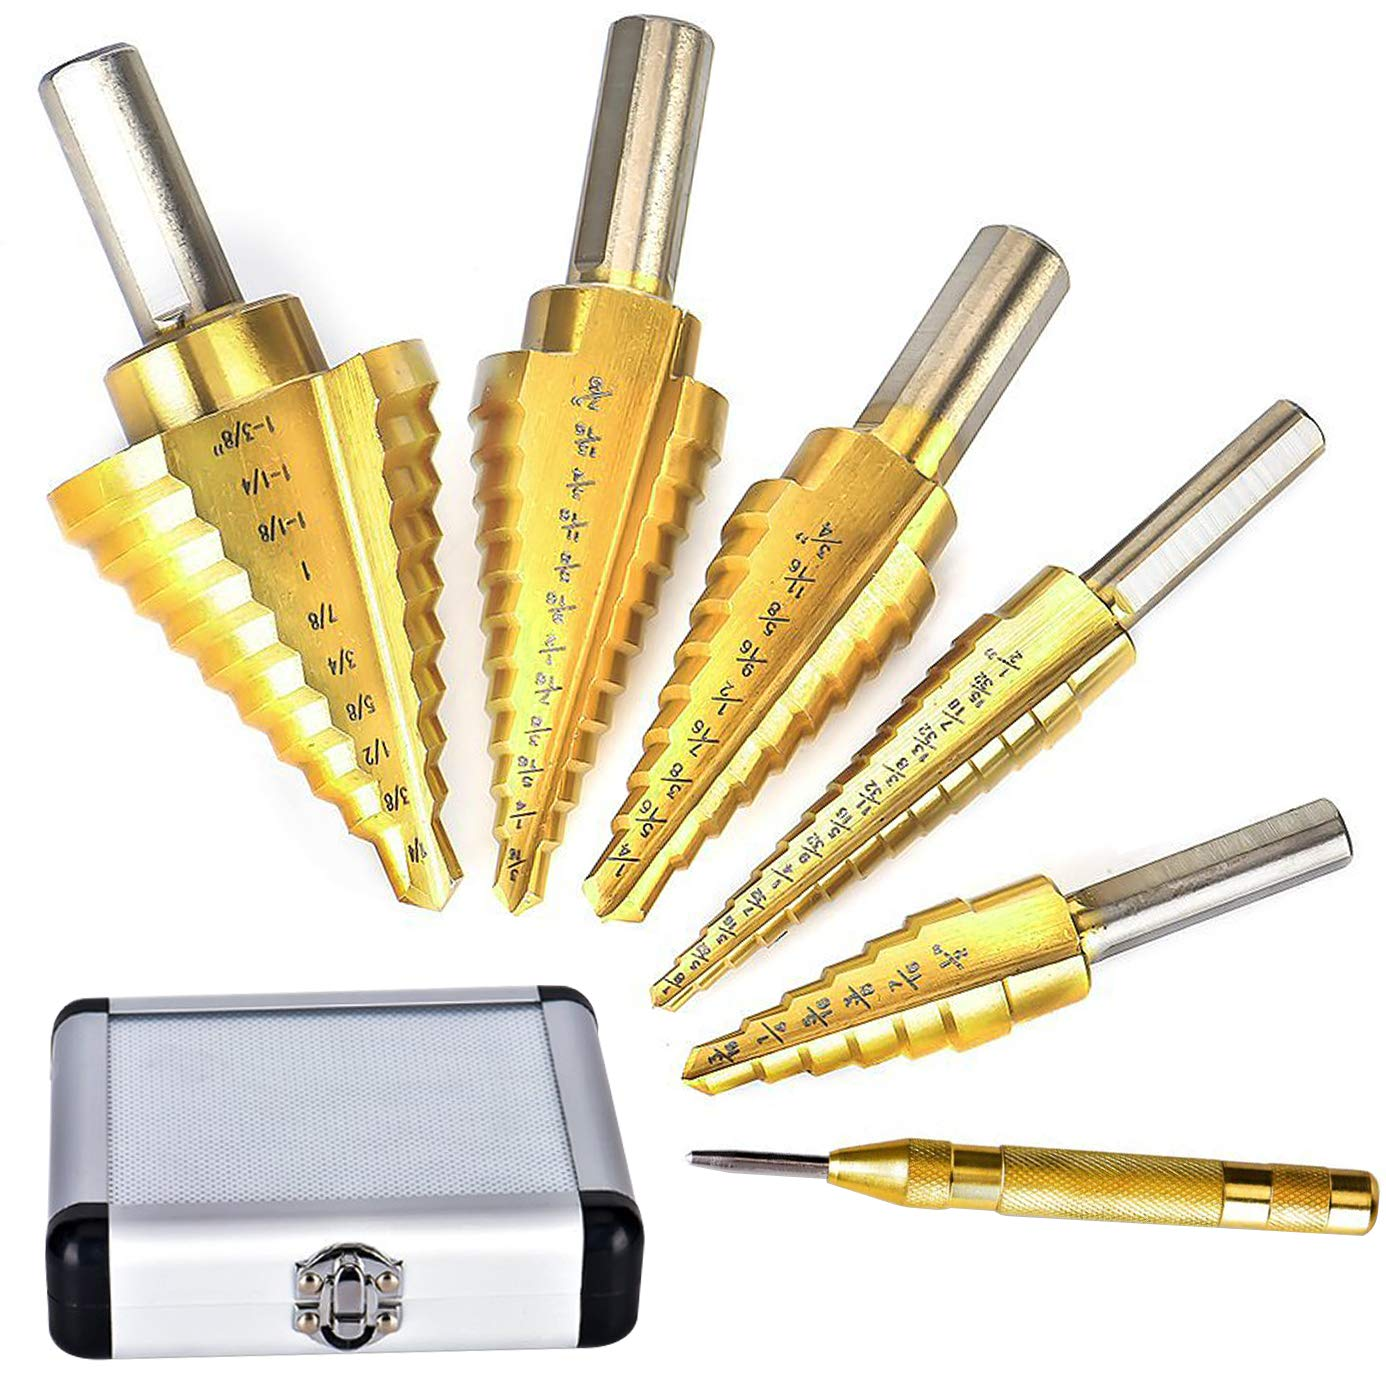 Volterin HSS 5PCS Titanium Step Drill Bit Set with Automatic Center Punch, 50 Sizes in 5 High Speed Steel Drill Bits Set for Sheet Metal with Aluminum Case, Multiple Hole Stepped Up Bits for DIY Lover